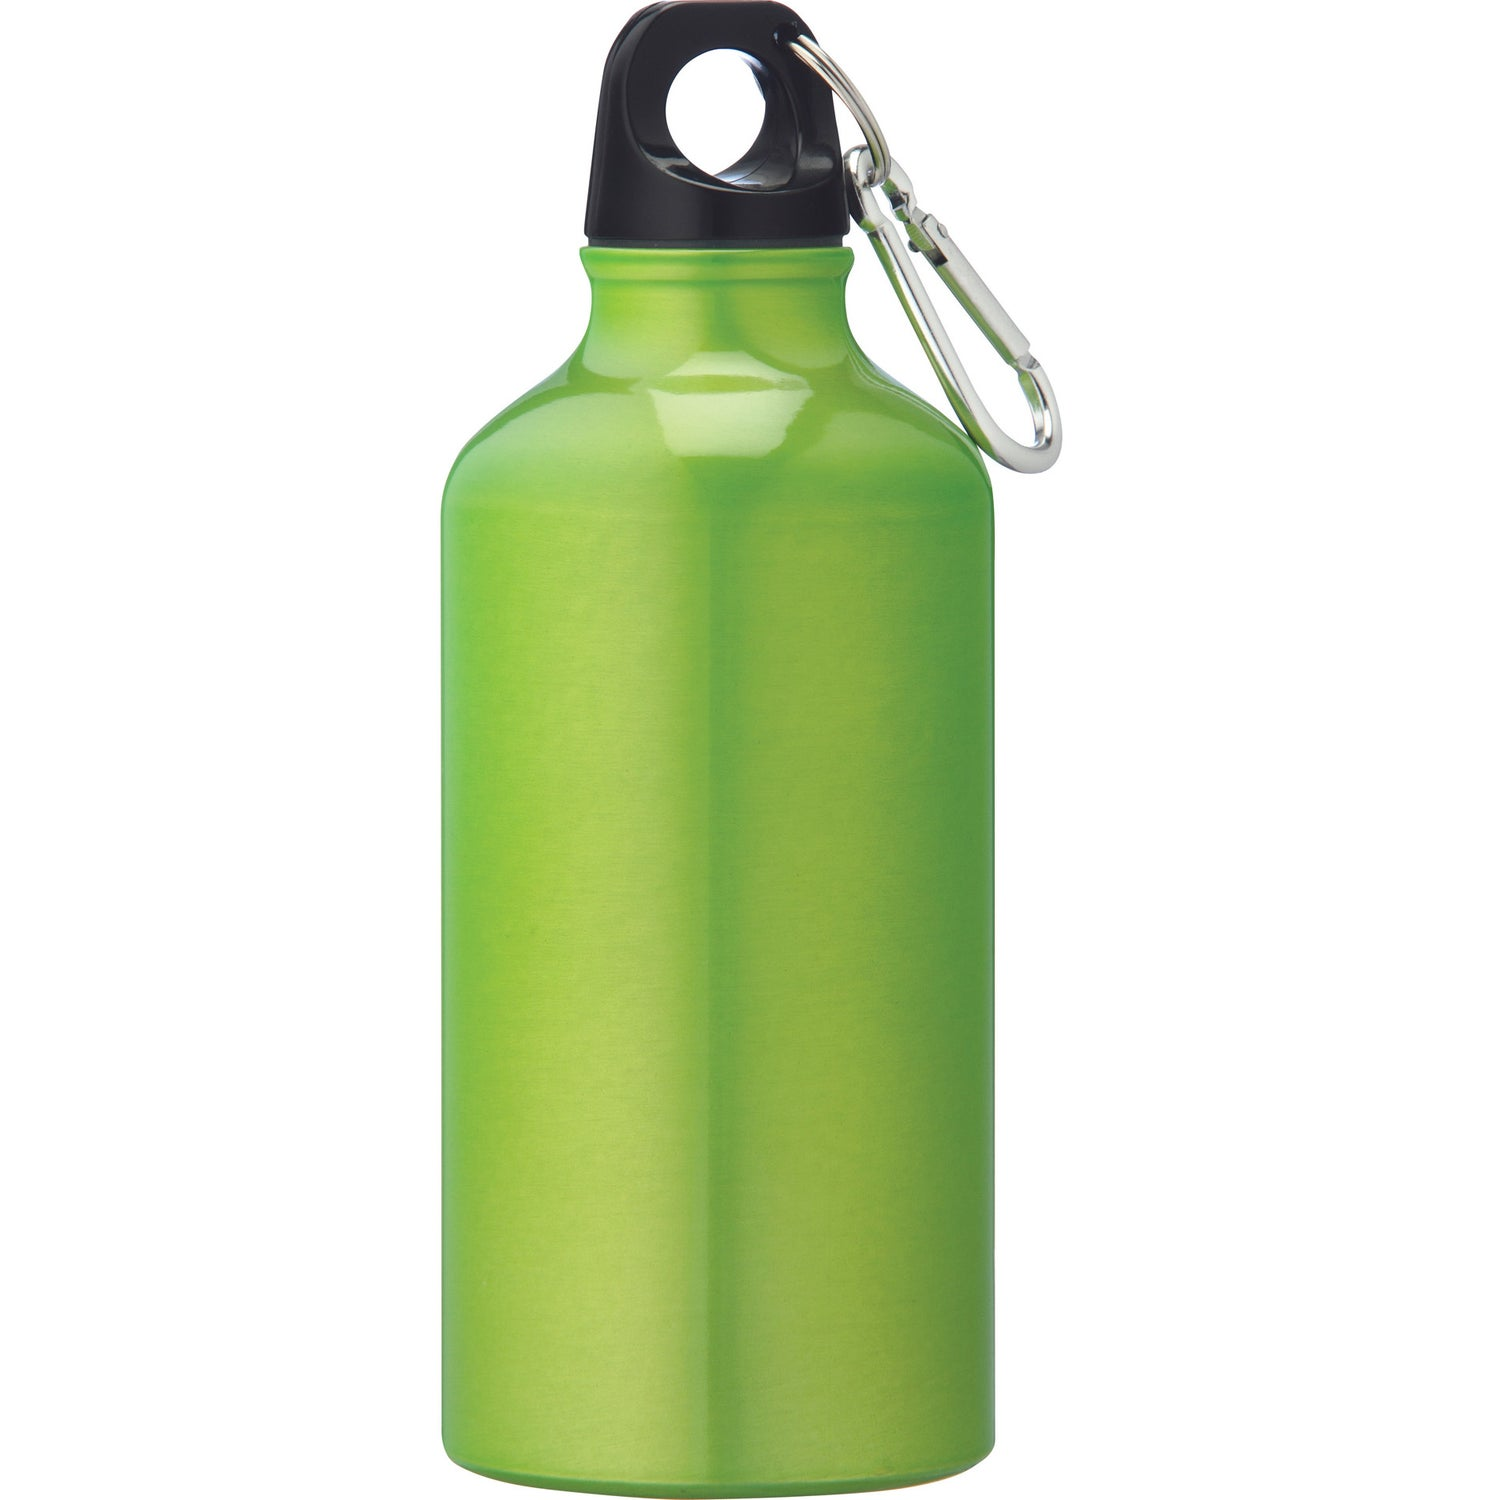 The Lil Shorty Sports Bottle 17 Oz Personalized Water Bottles